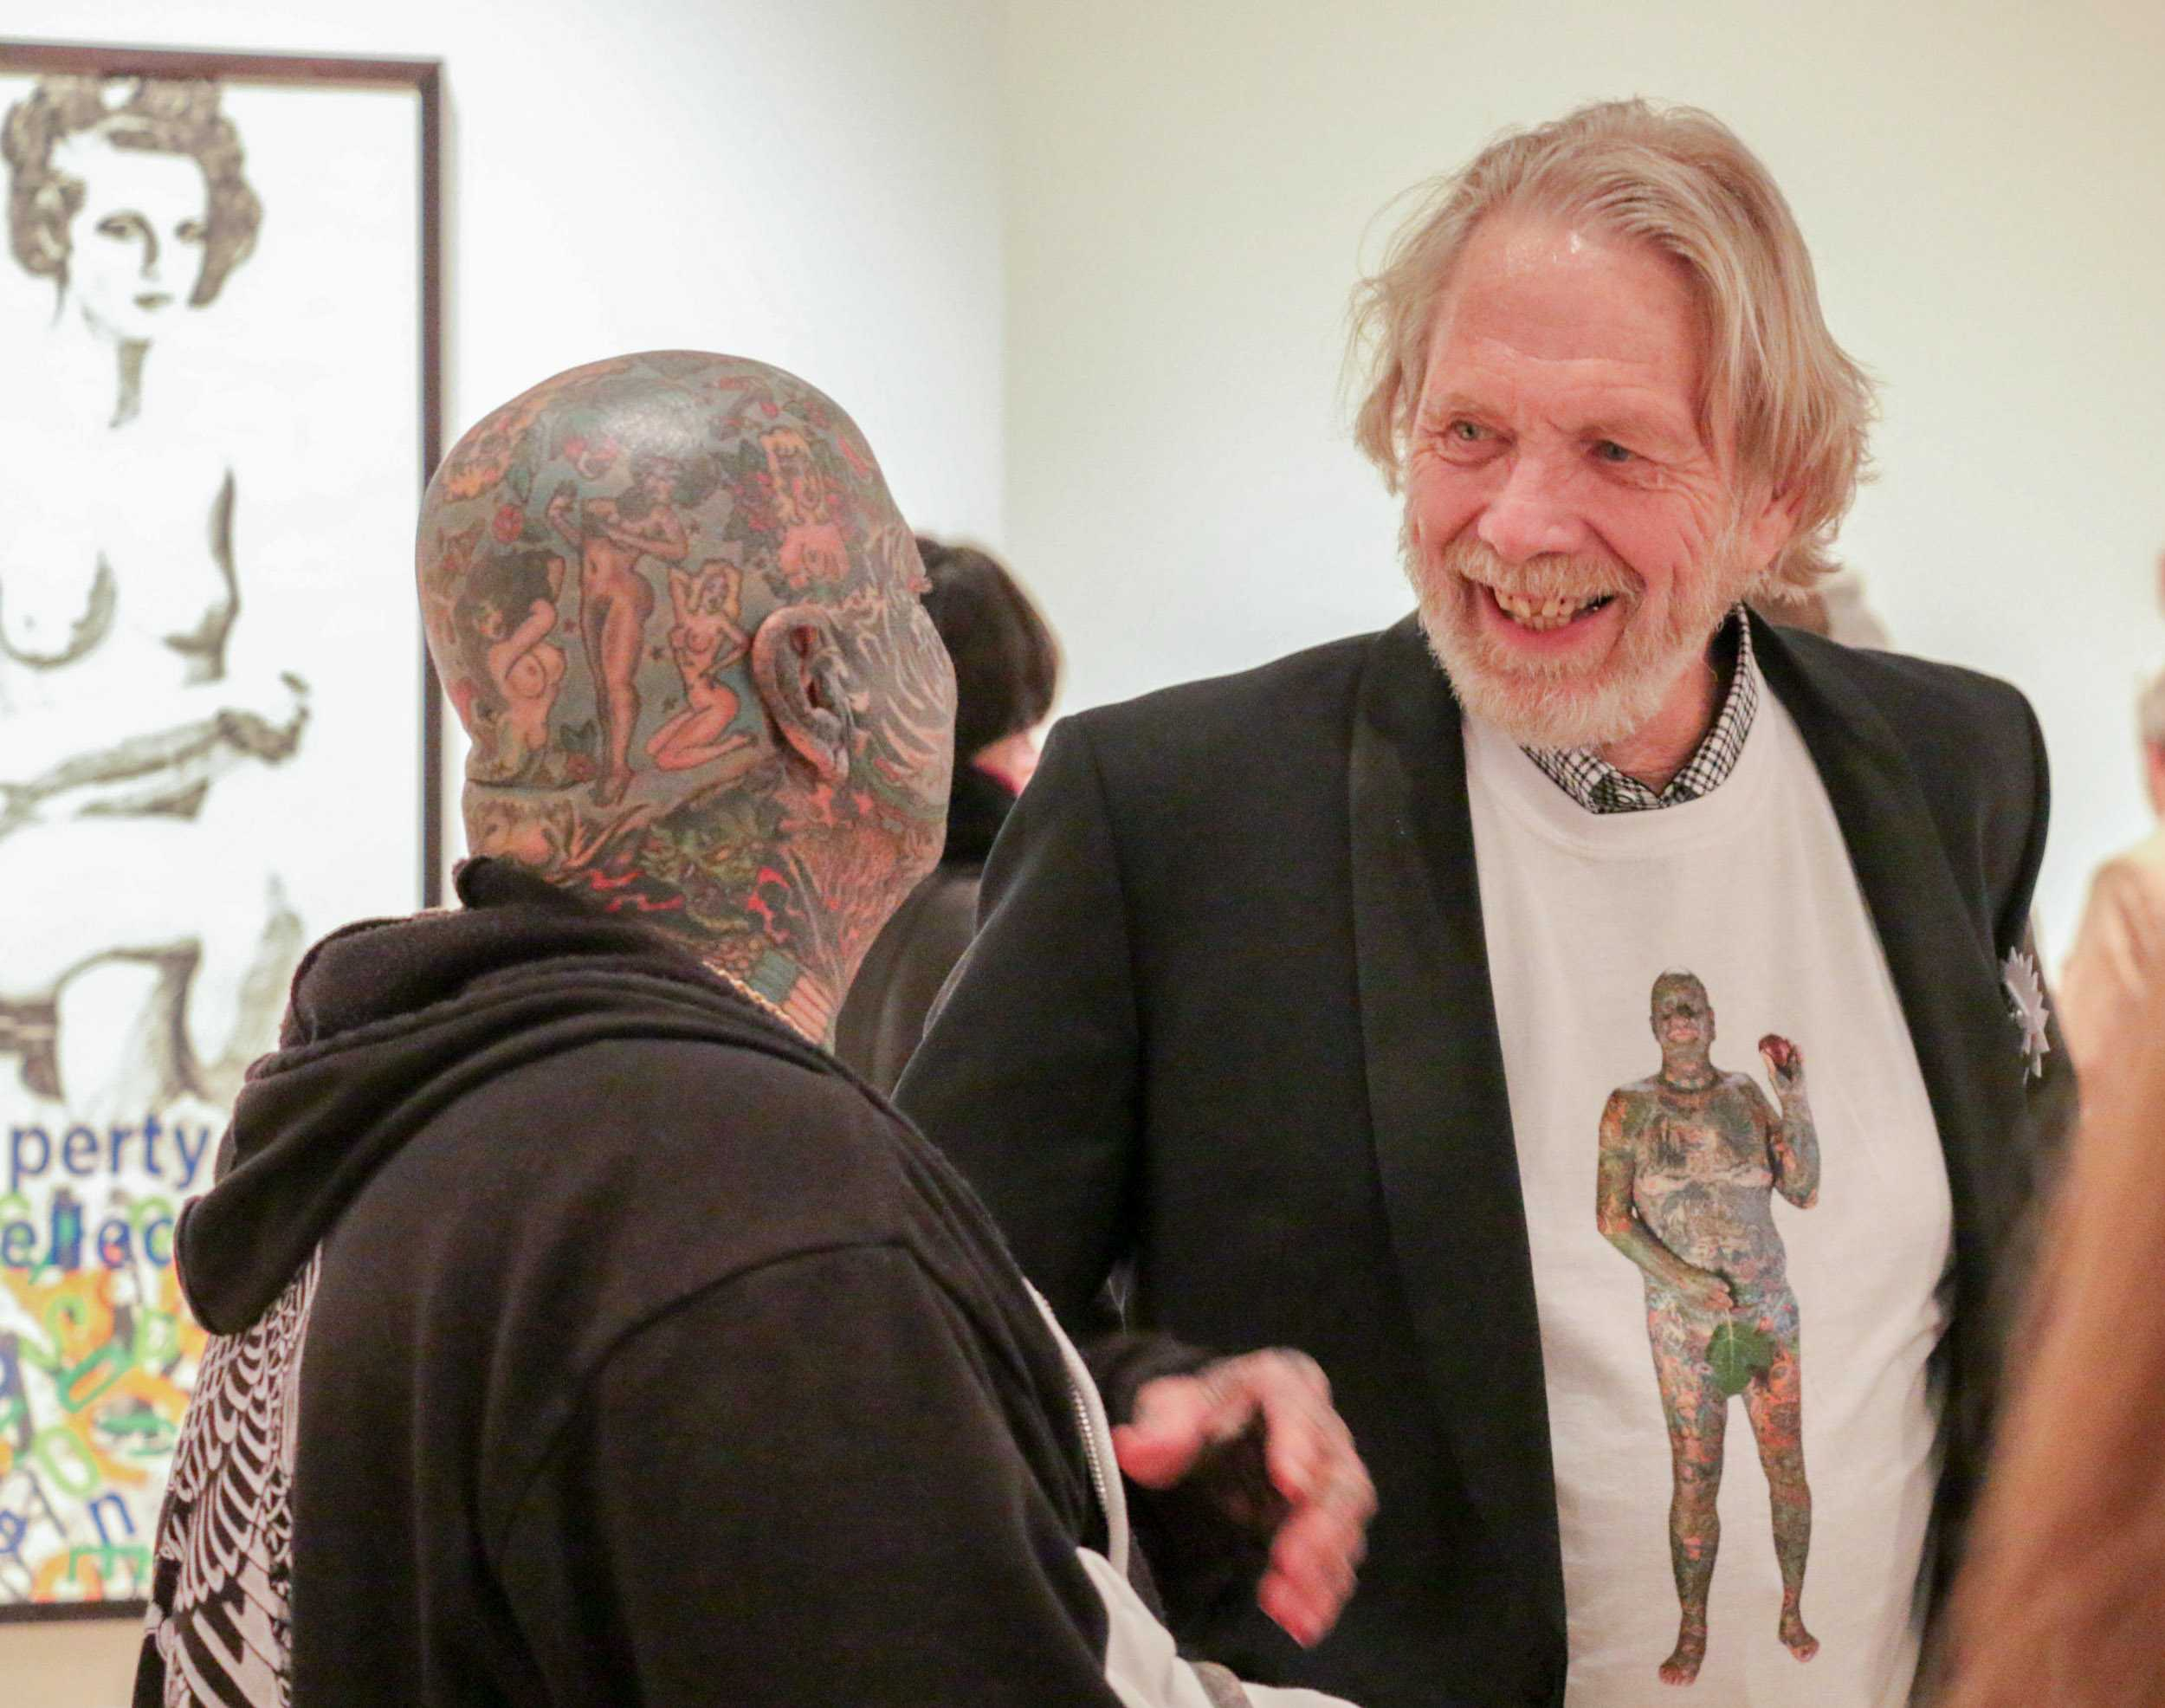 Professor Larry Schwarm talks to his subject Larry K. during opening night at the Ulrich Museum of Art on Saturday.